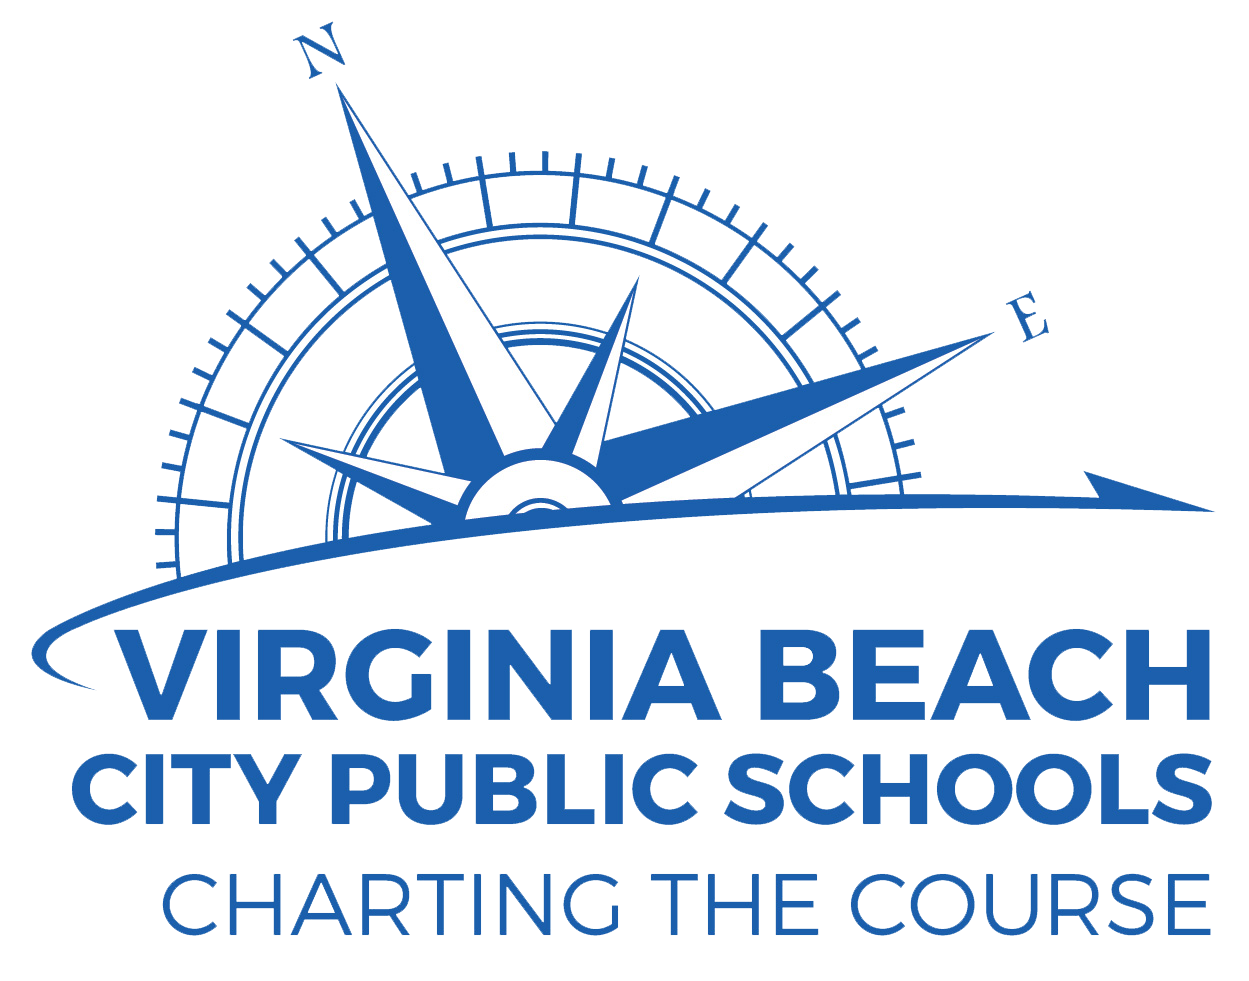 Virginia Beach City Public Schools Charting The Course